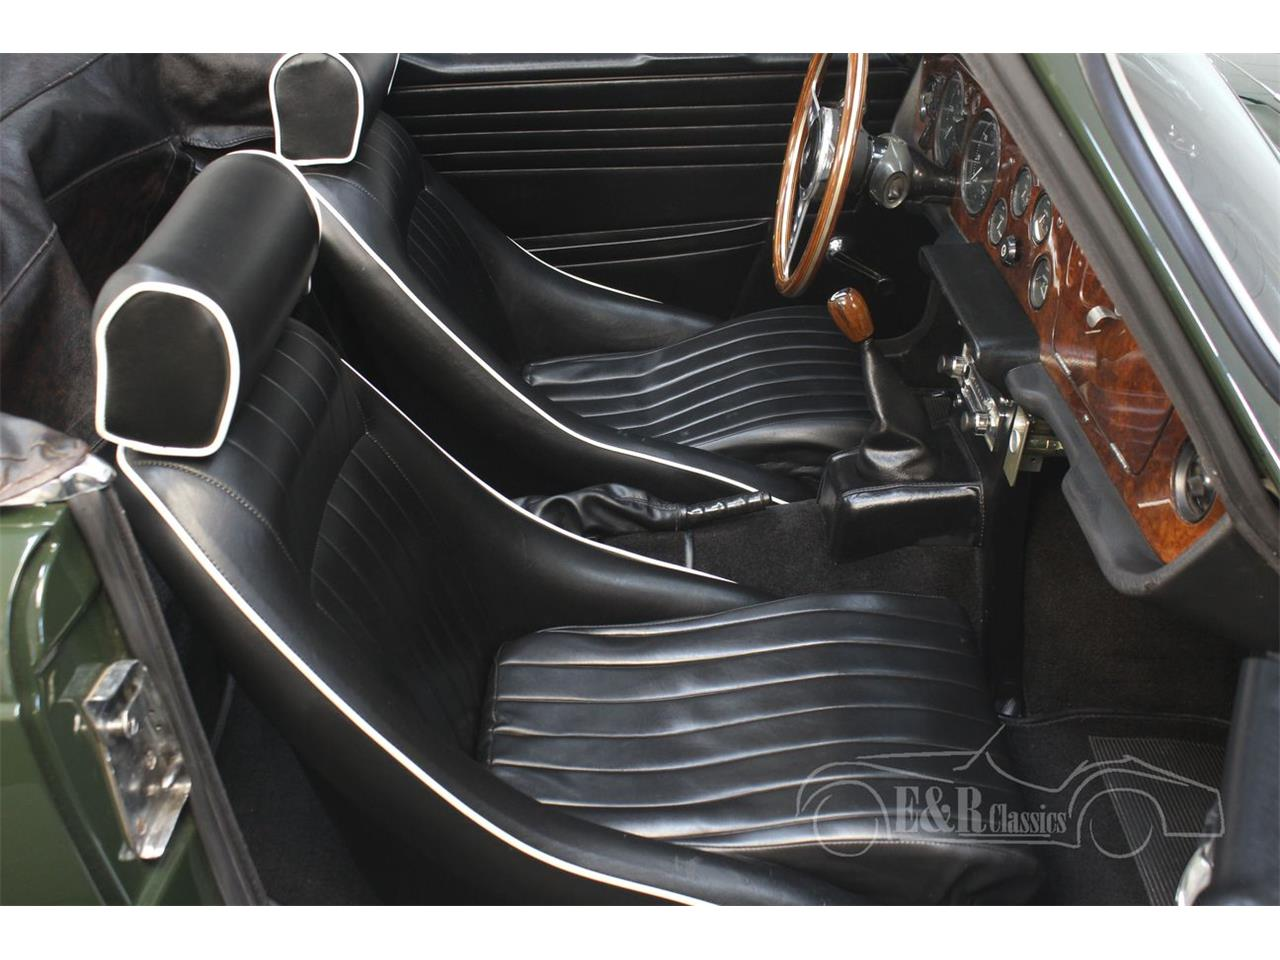 Large Picture of '69 TR6 located in Waalwijk Noord Brabant - $33,700.00 Offered by E & R Classics - PWOE